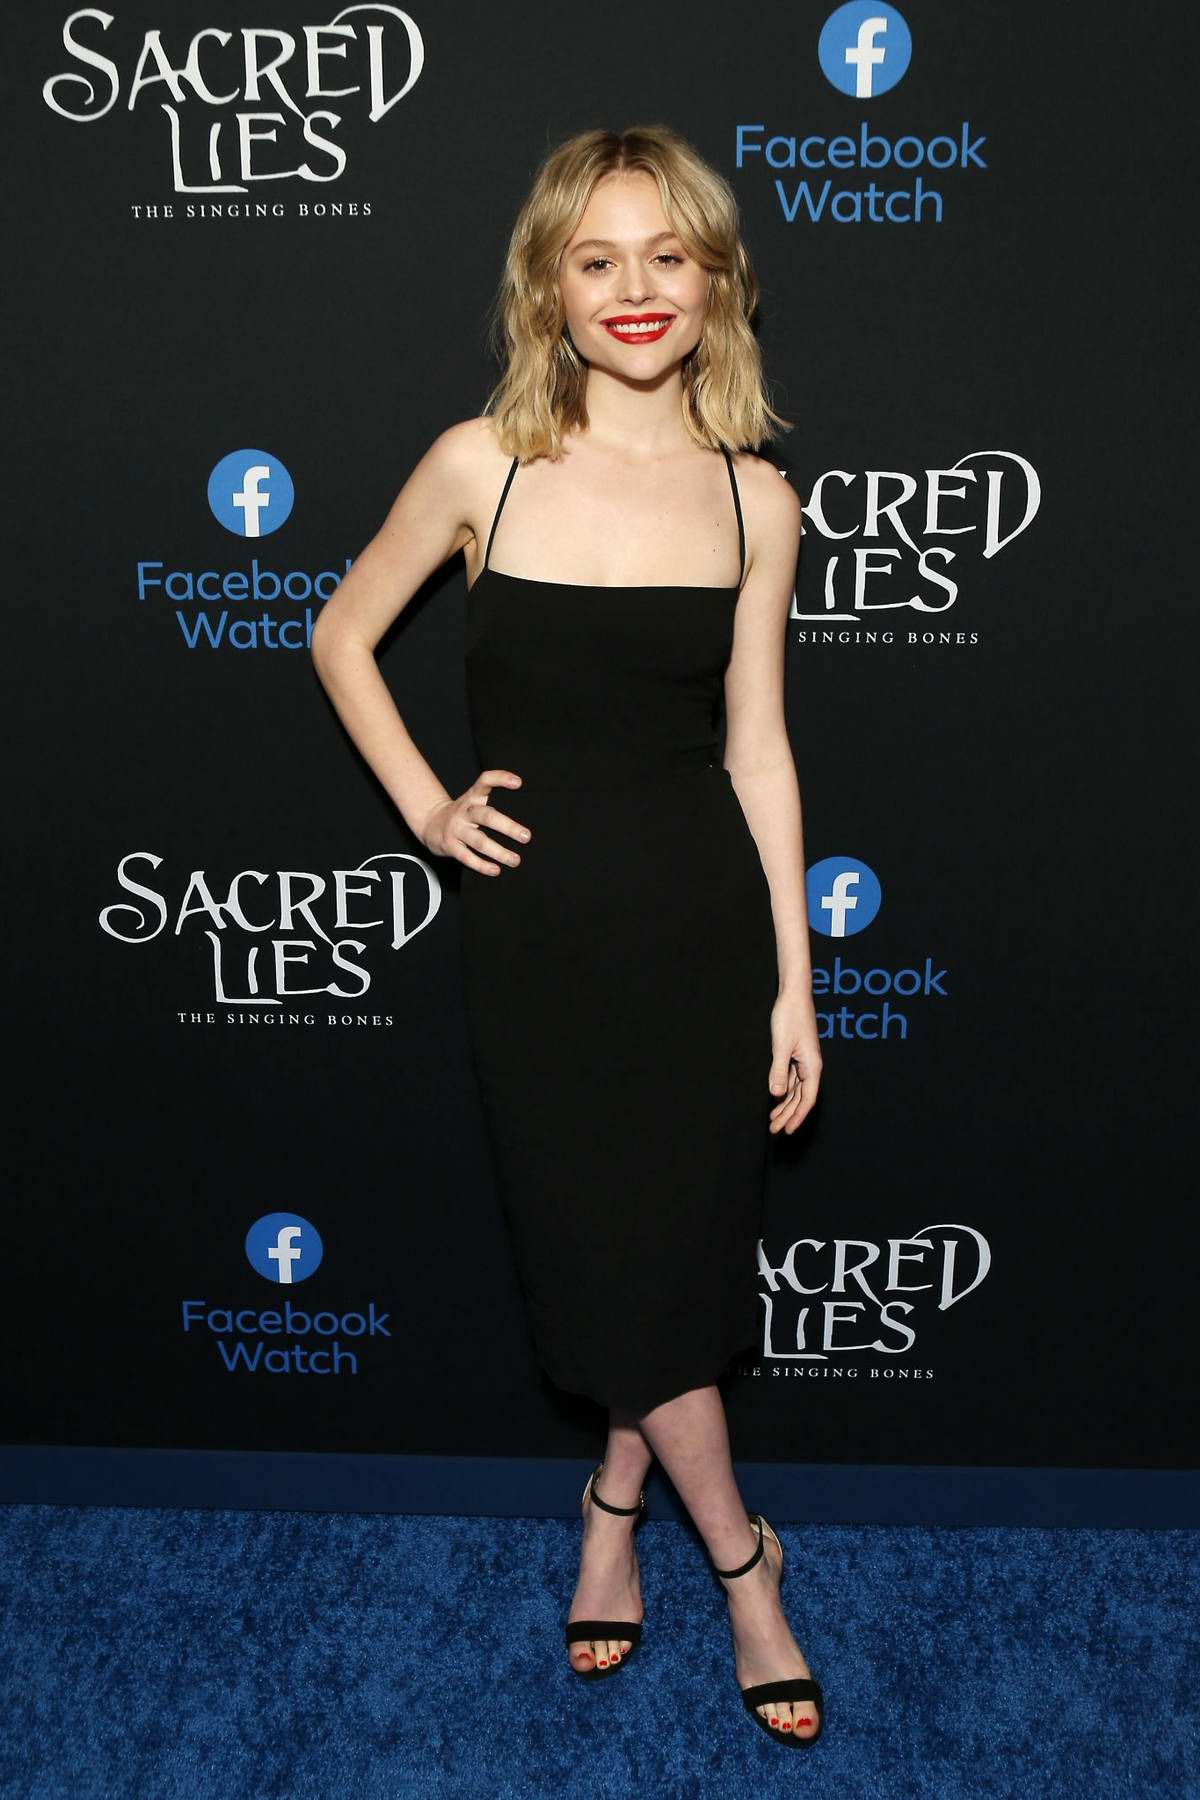 Emily Alyn Lind attends the Premiere of 'Sacred Lies: The Singing Bones' in Los Angeles